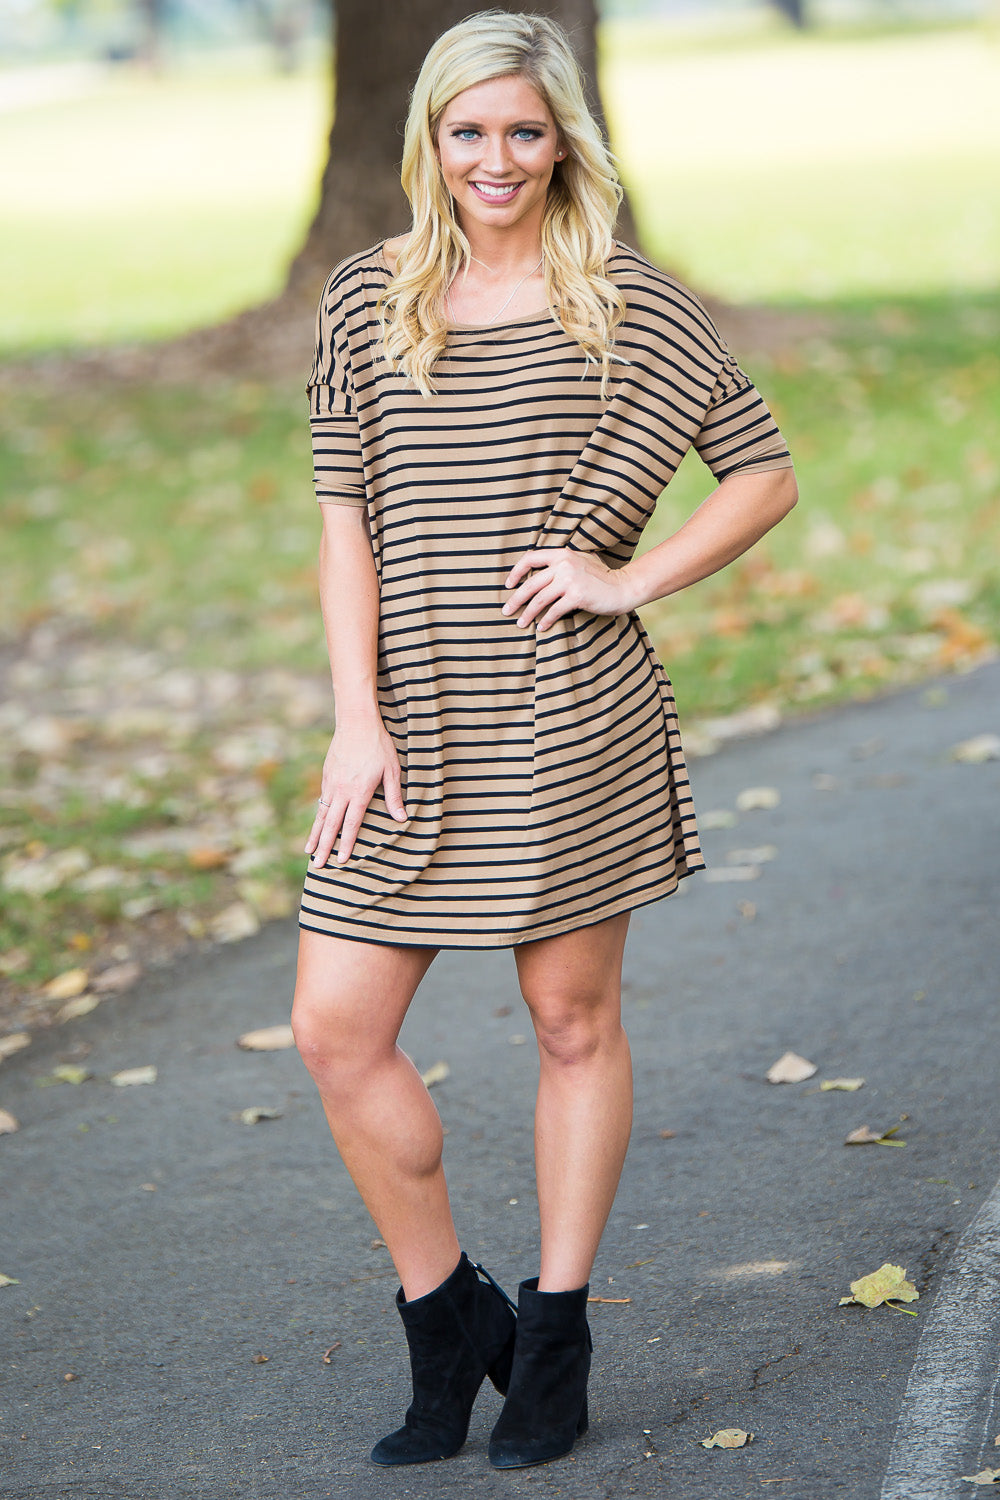 Half Sleeve Piko Tunic - Camel/Black - Piko Clothing